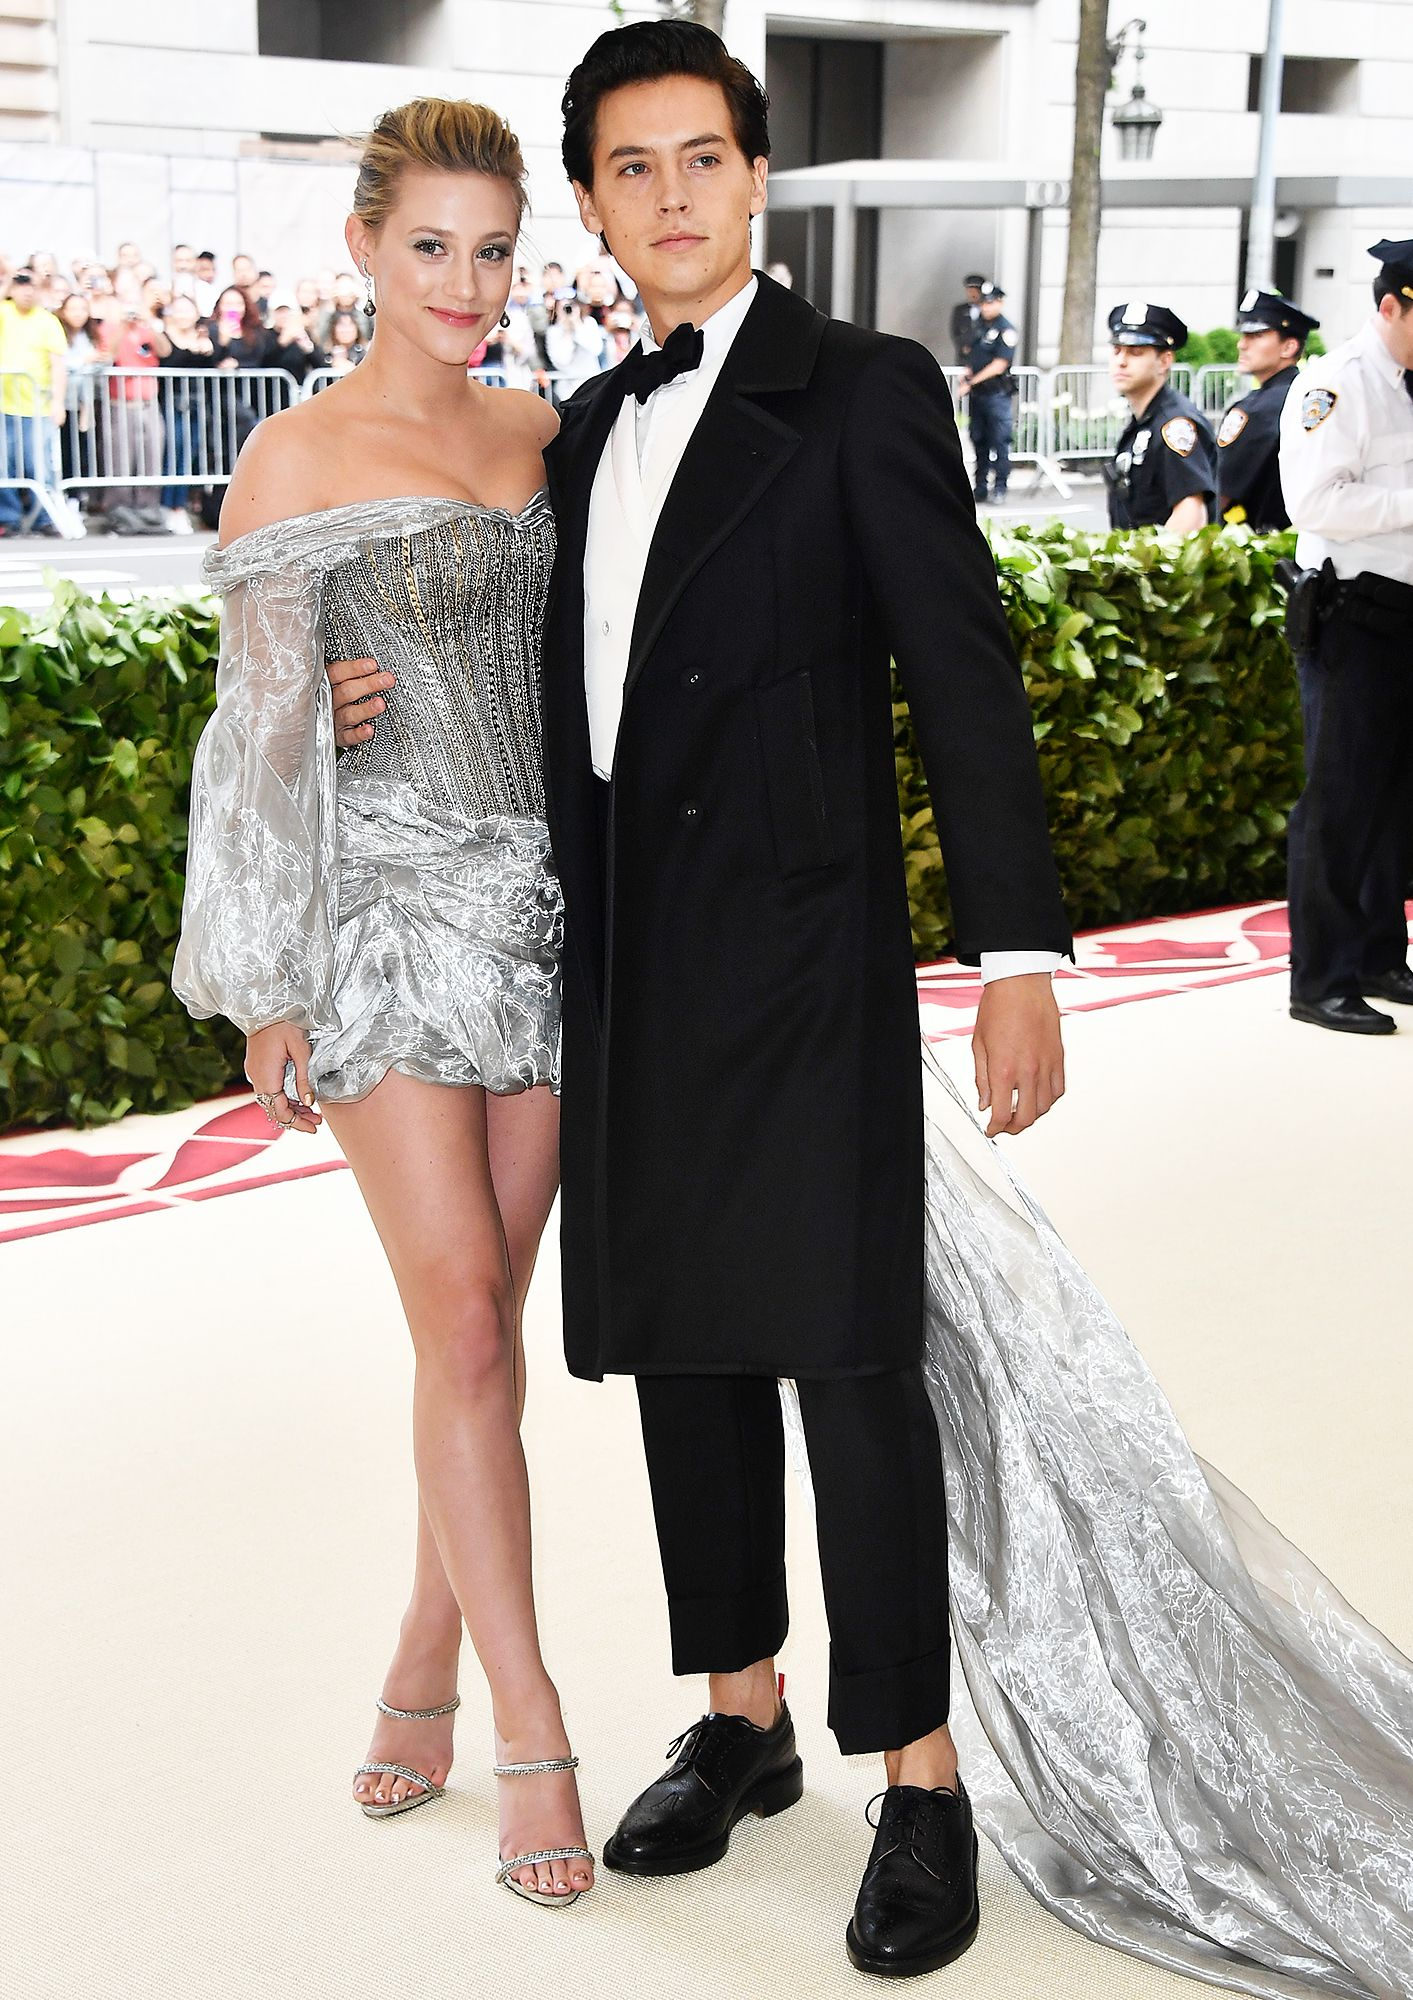 Lili Reinhart And Cole Sprouse Make Red Carpet Debut At Met Gala Lili Reinhart And Cole Sprouse Met Gala Met Gala Dresses